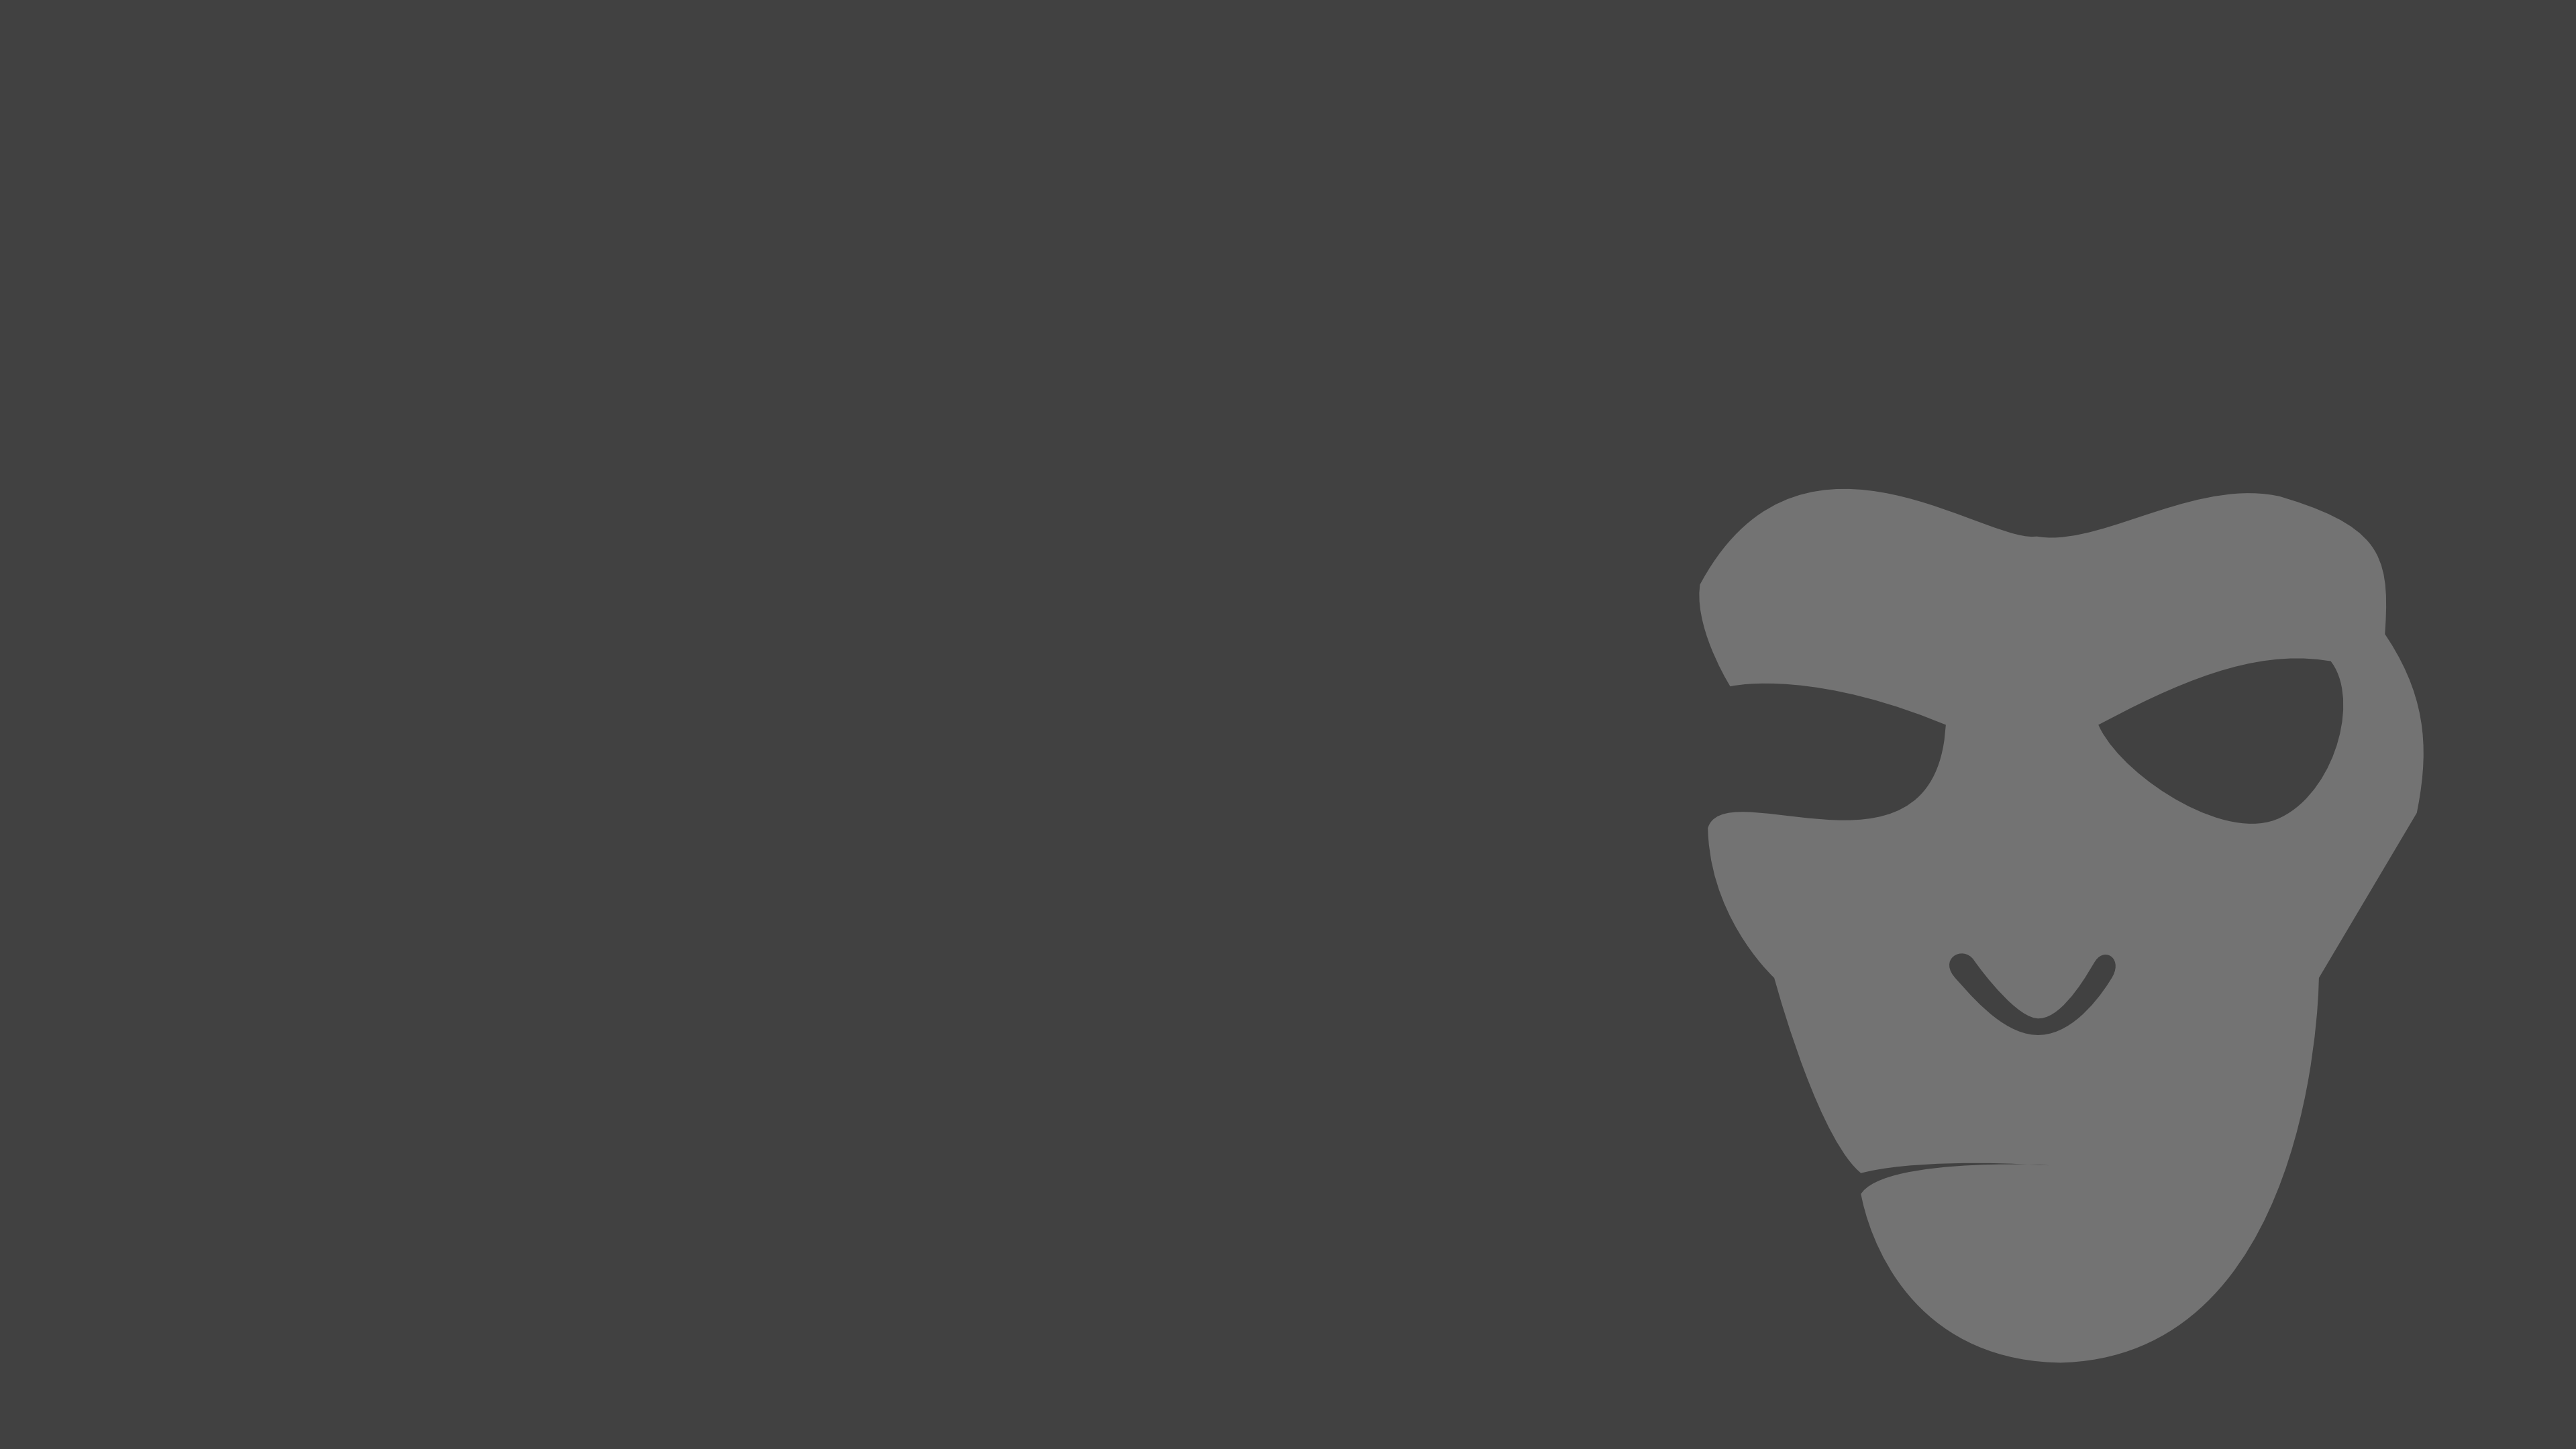 Planet Of The Apes Cornelius Minimalist Wallpaper By Grenzionky On